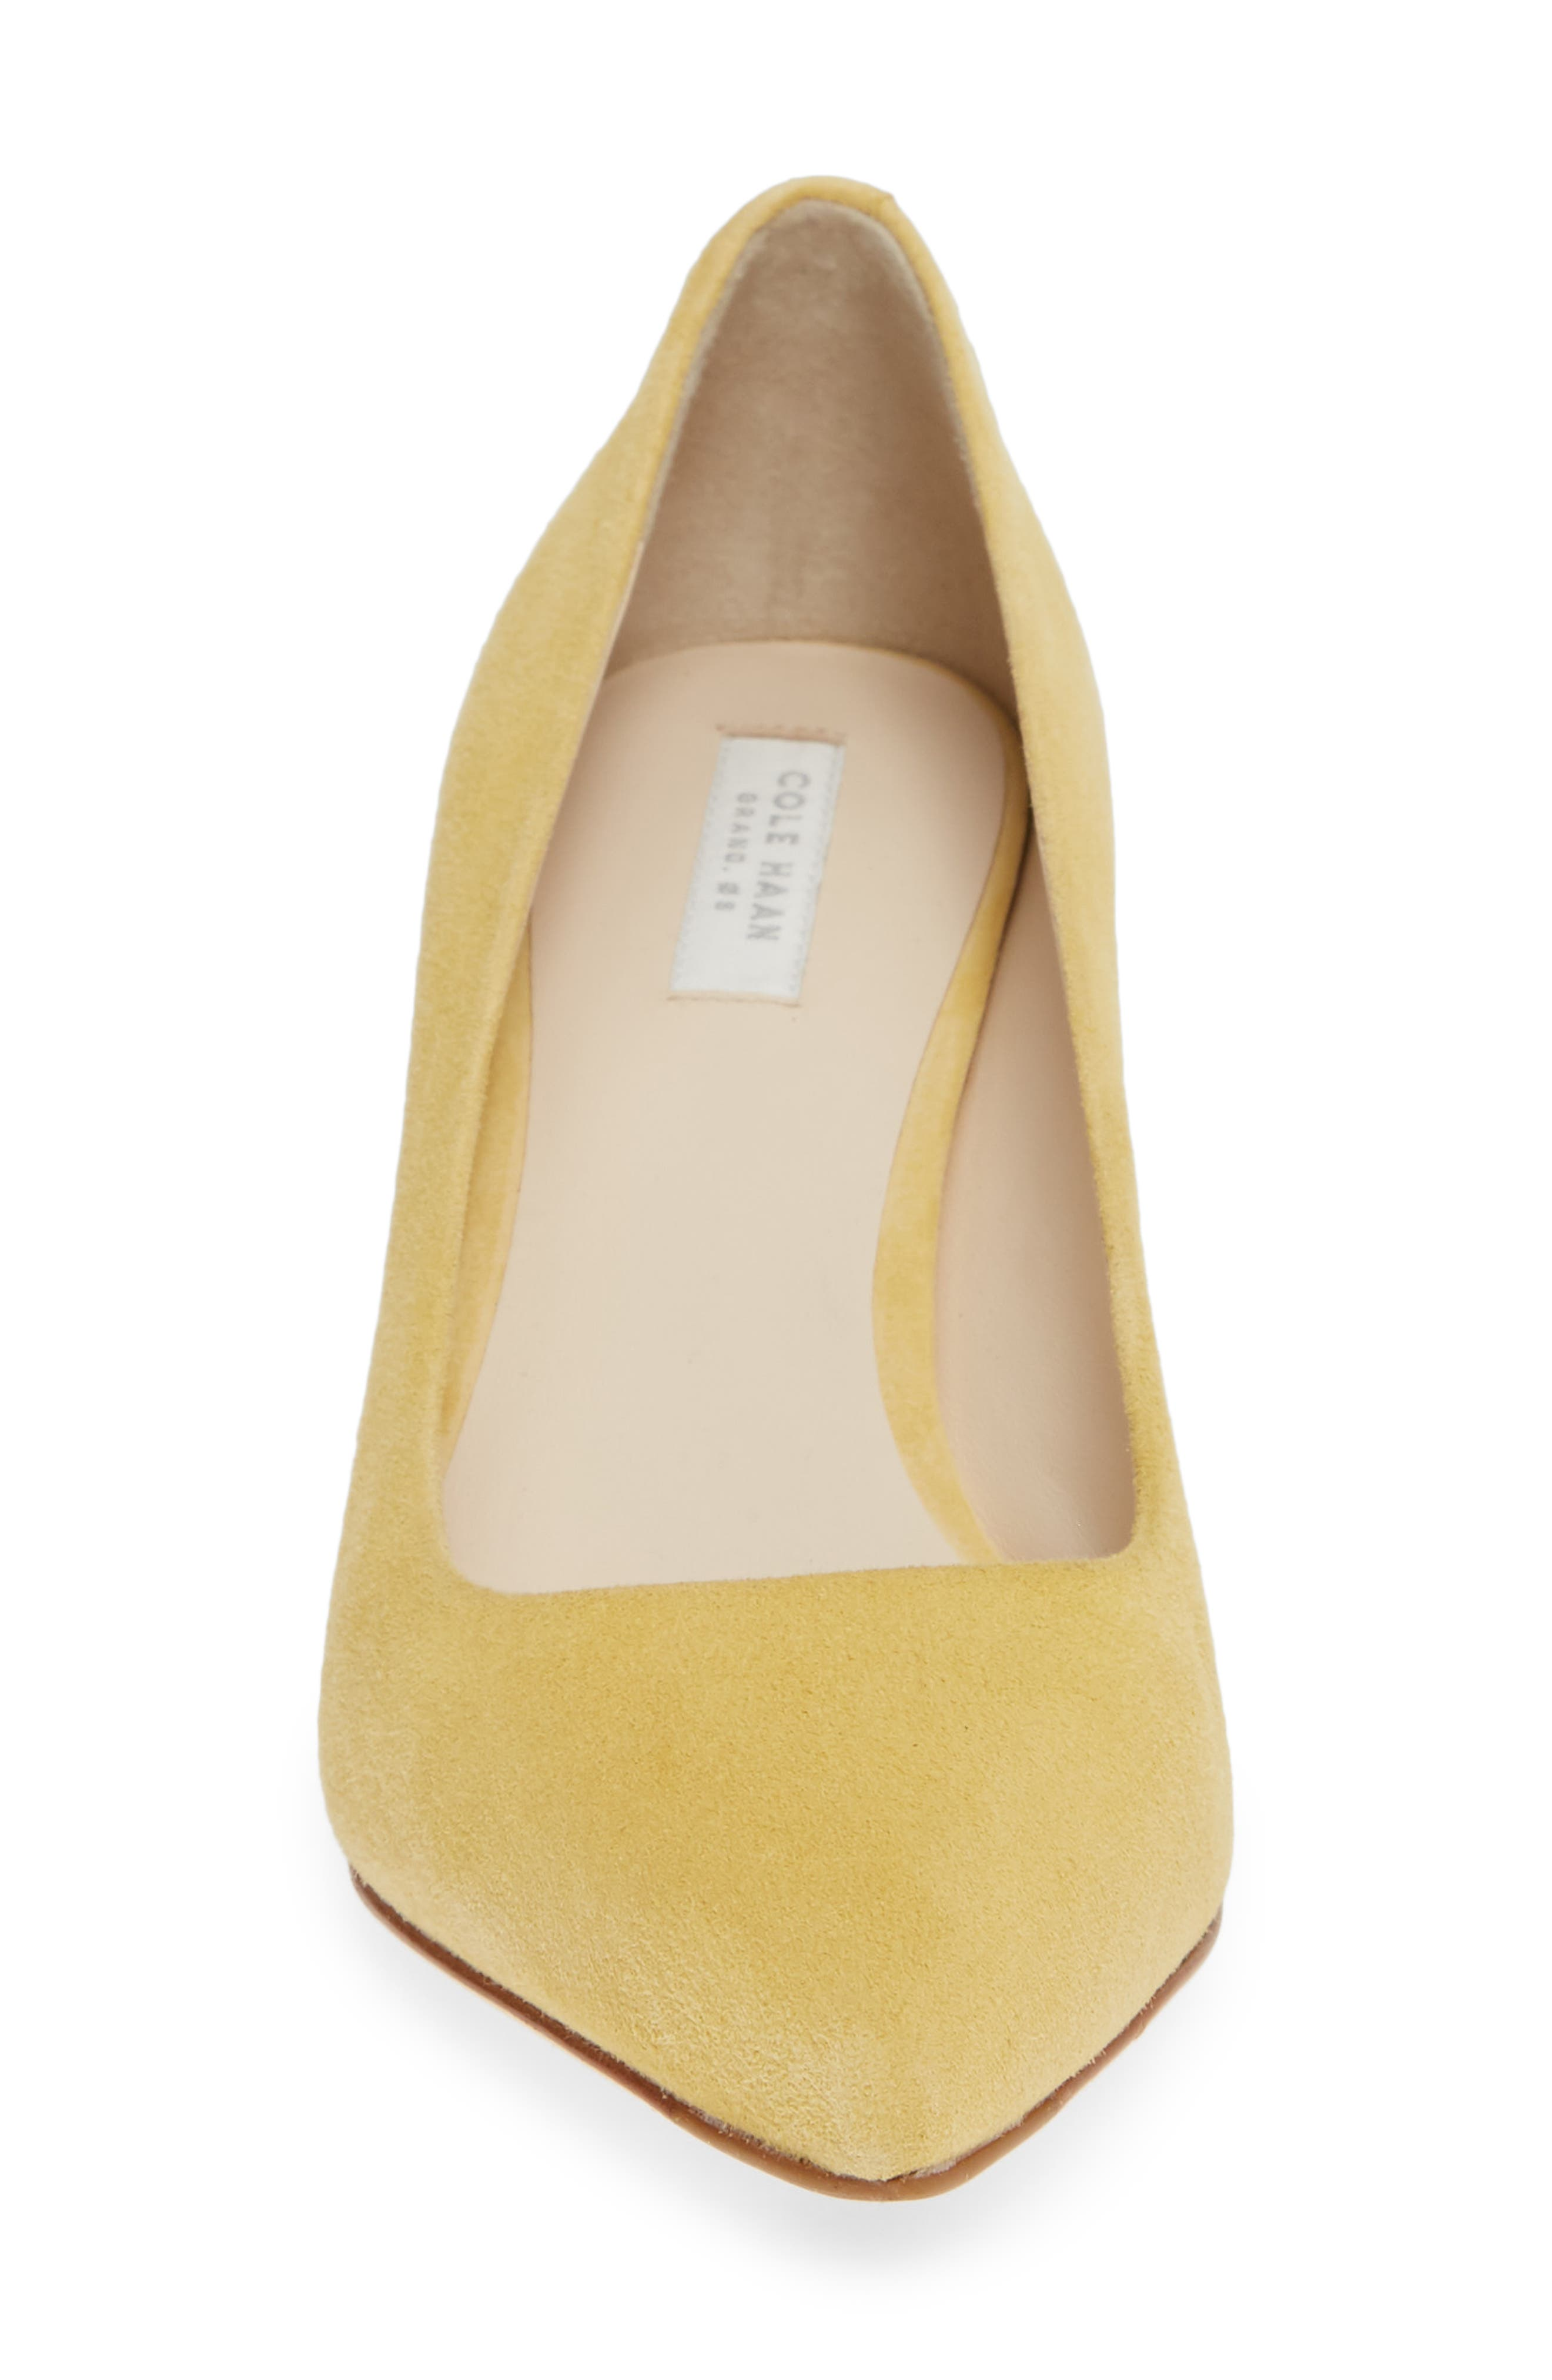 COLE HAAN,                             Vesta Pointy Toe Pump,                             Alternate thumbnail 4, color,                             SUNSET GOLD SUEDE